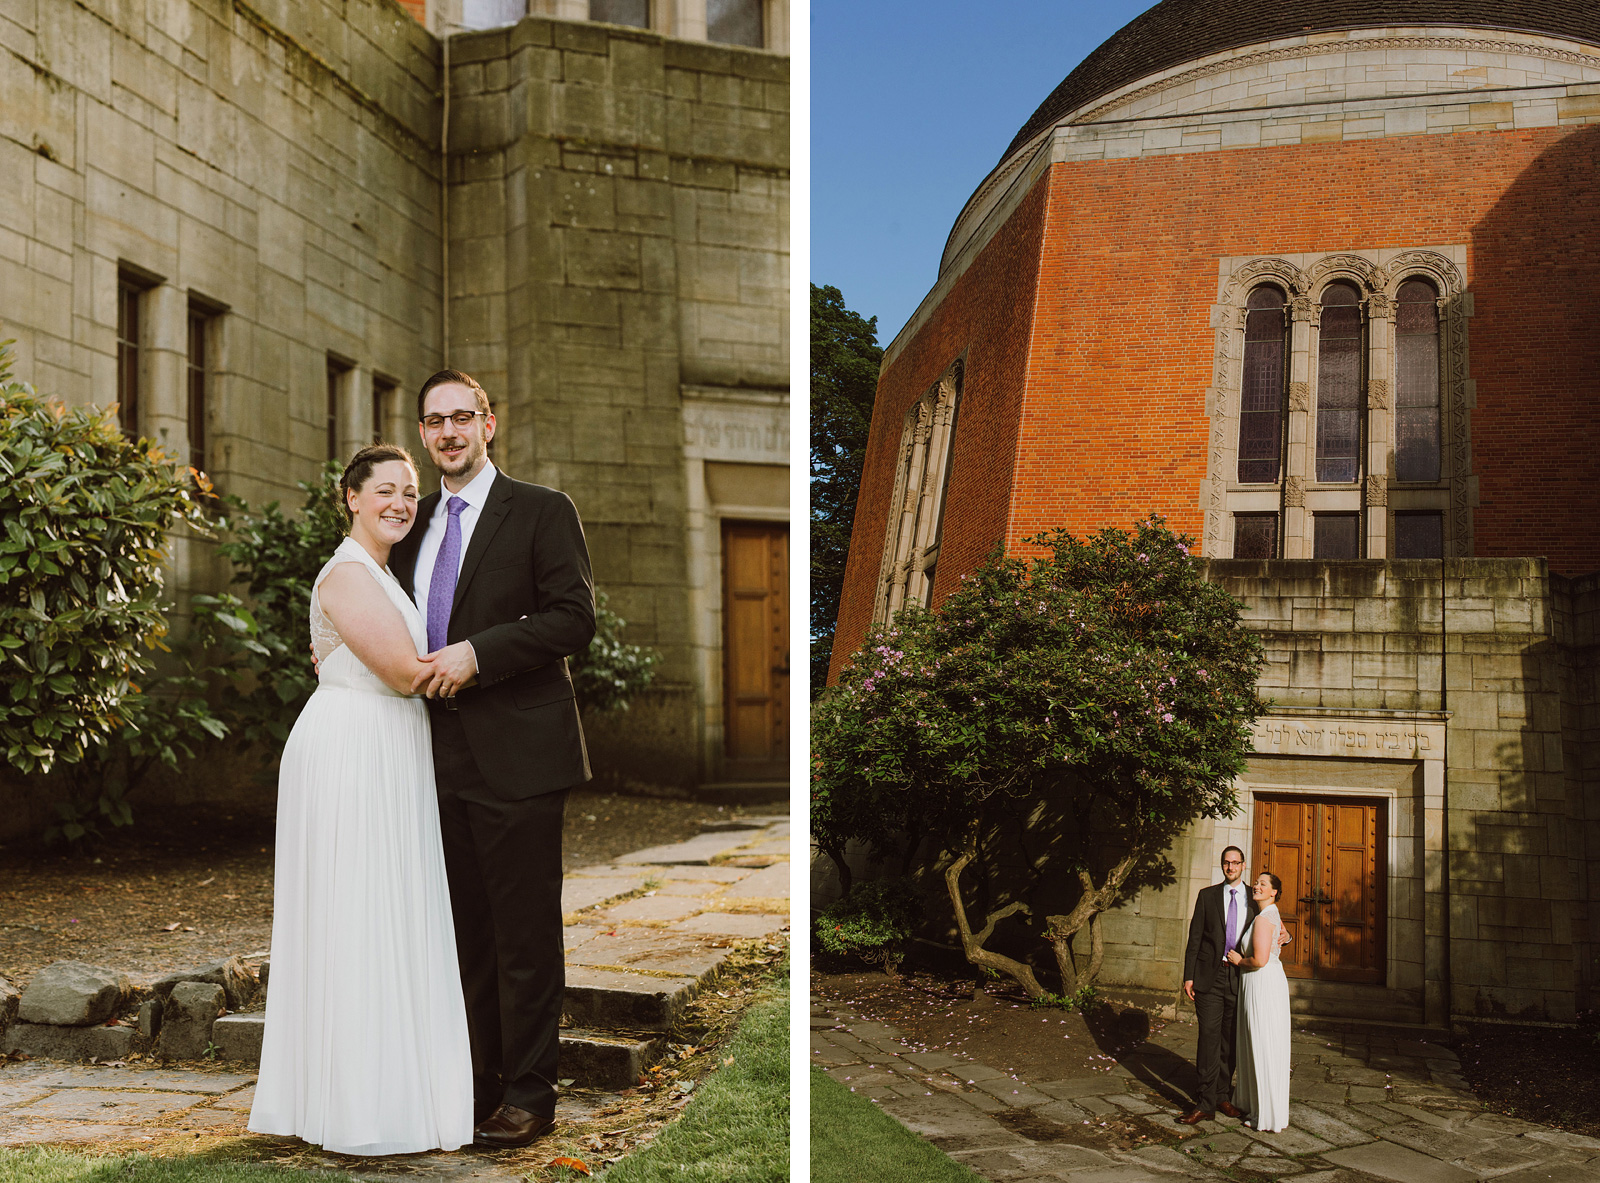 Bride and Groom portraits at their Congregation Beth Israel wedding